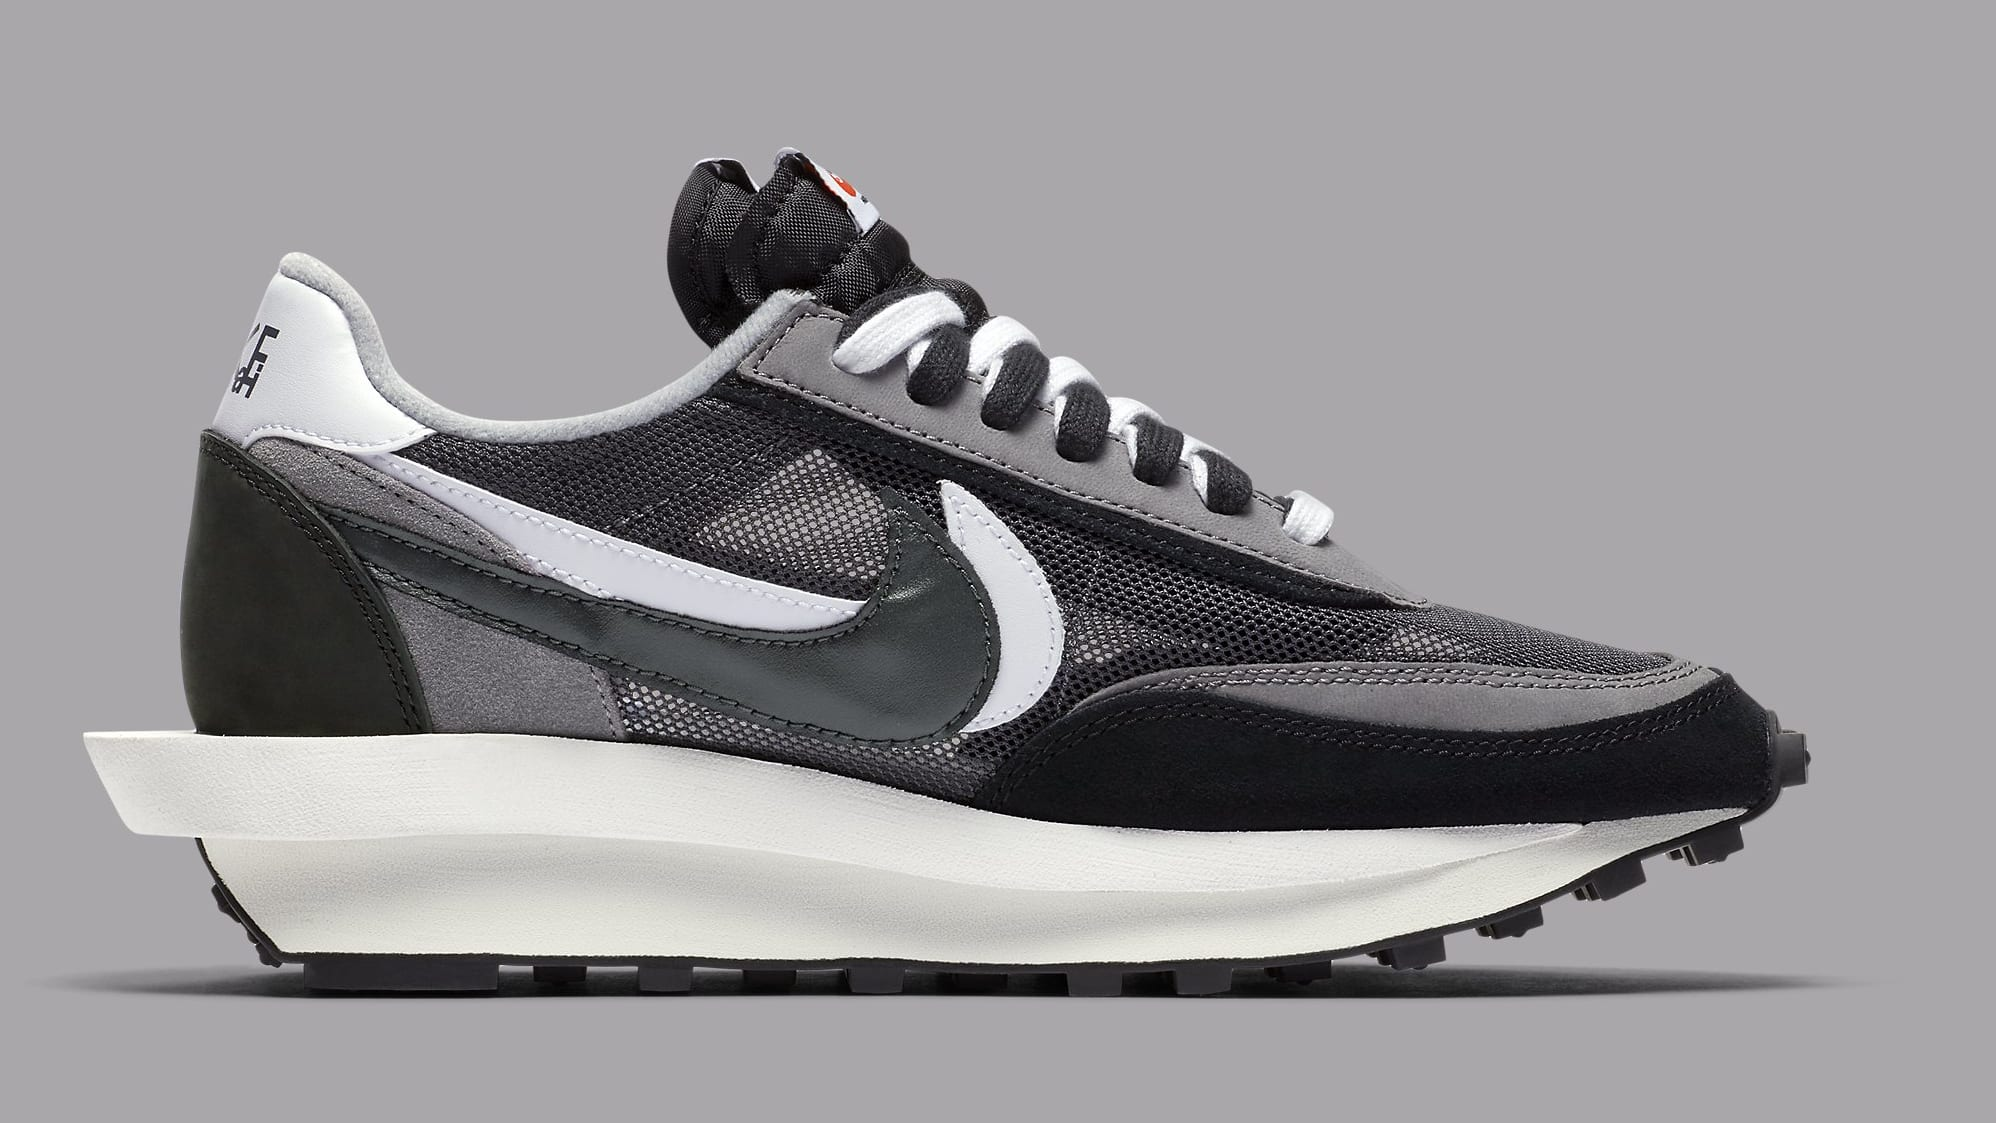 Sacai x Nike LDWaffle Black Anthracite Release Date BV0073-001 Medial